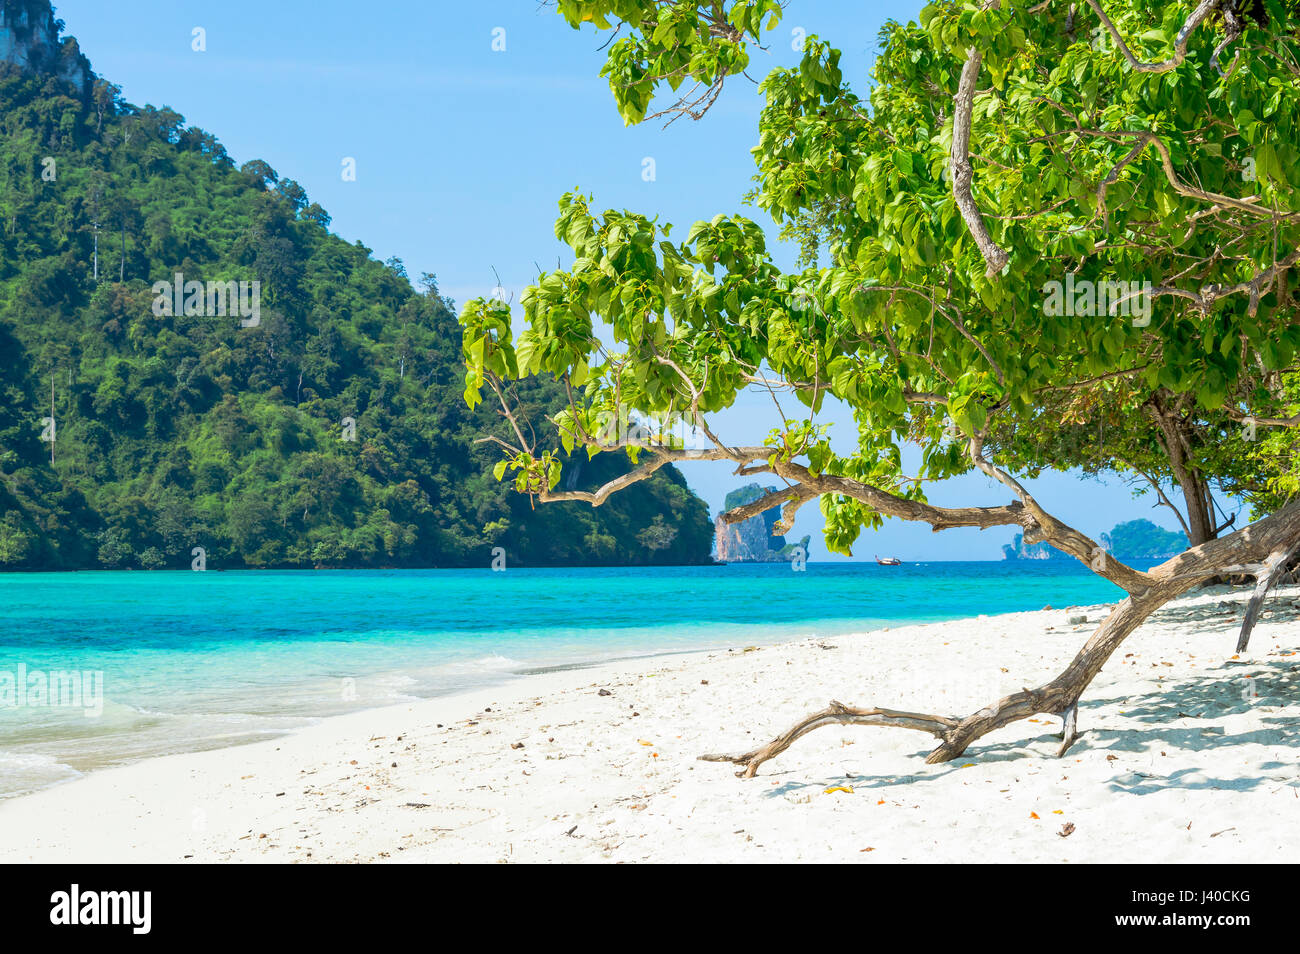 Scenic View of tropical island beach Against coast - Stock Image